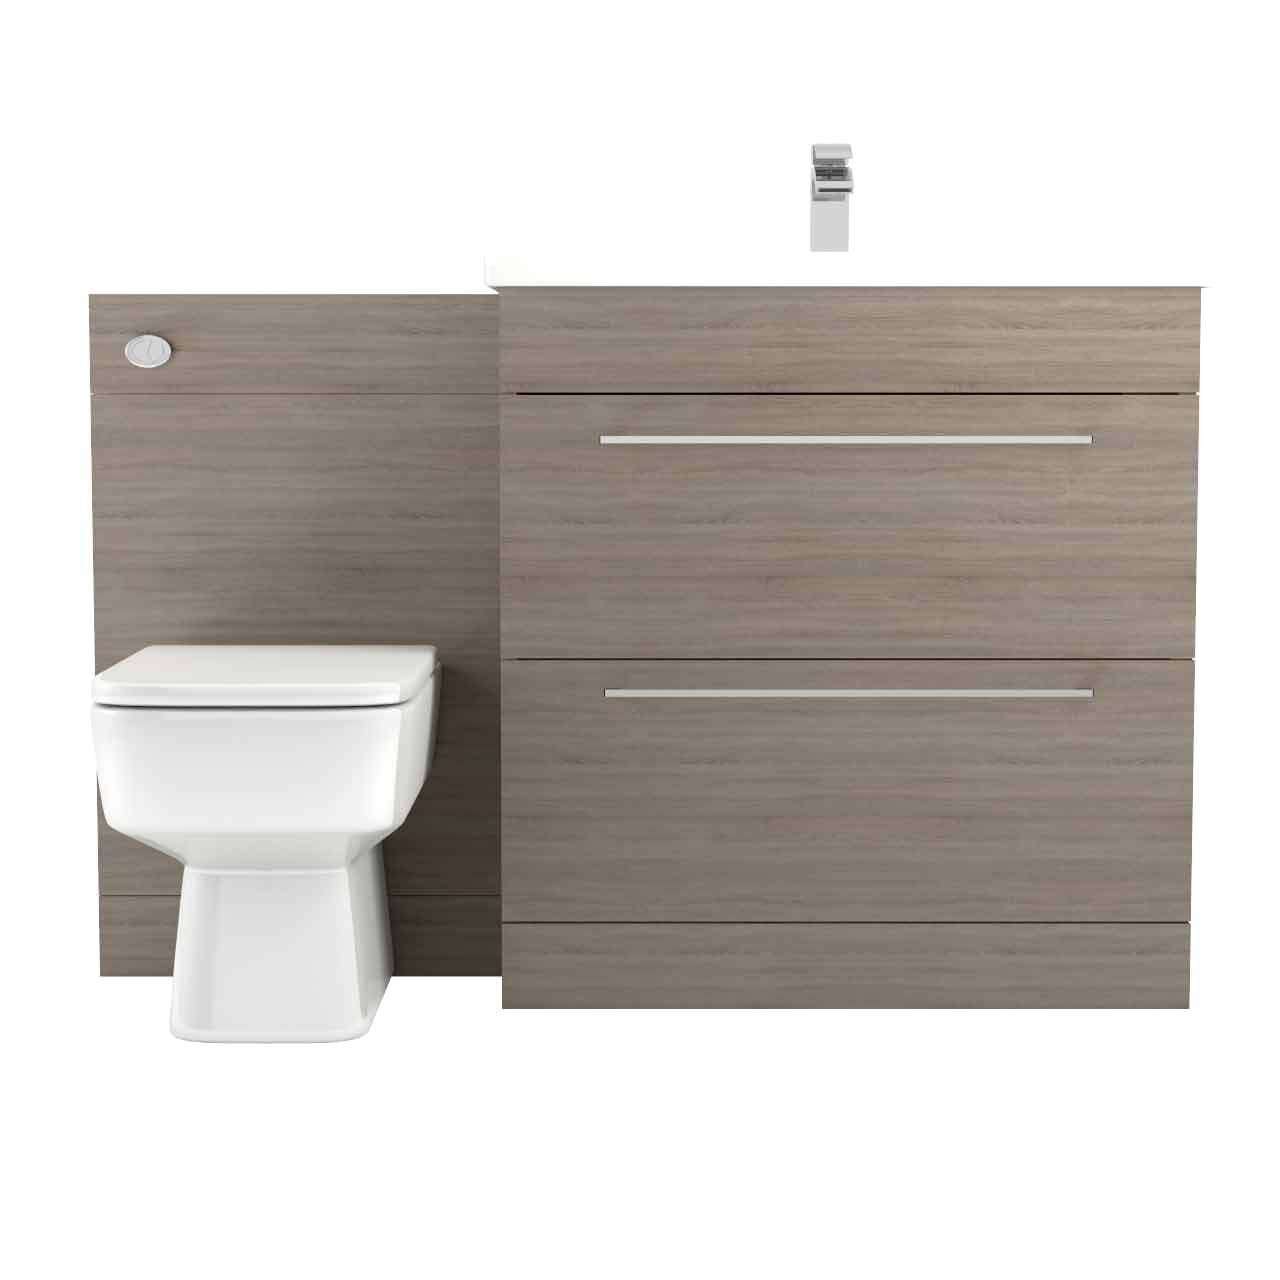 Napoli Bordalino Oak 1300mm 2 Drawer Vanity Unit Toilet Suite